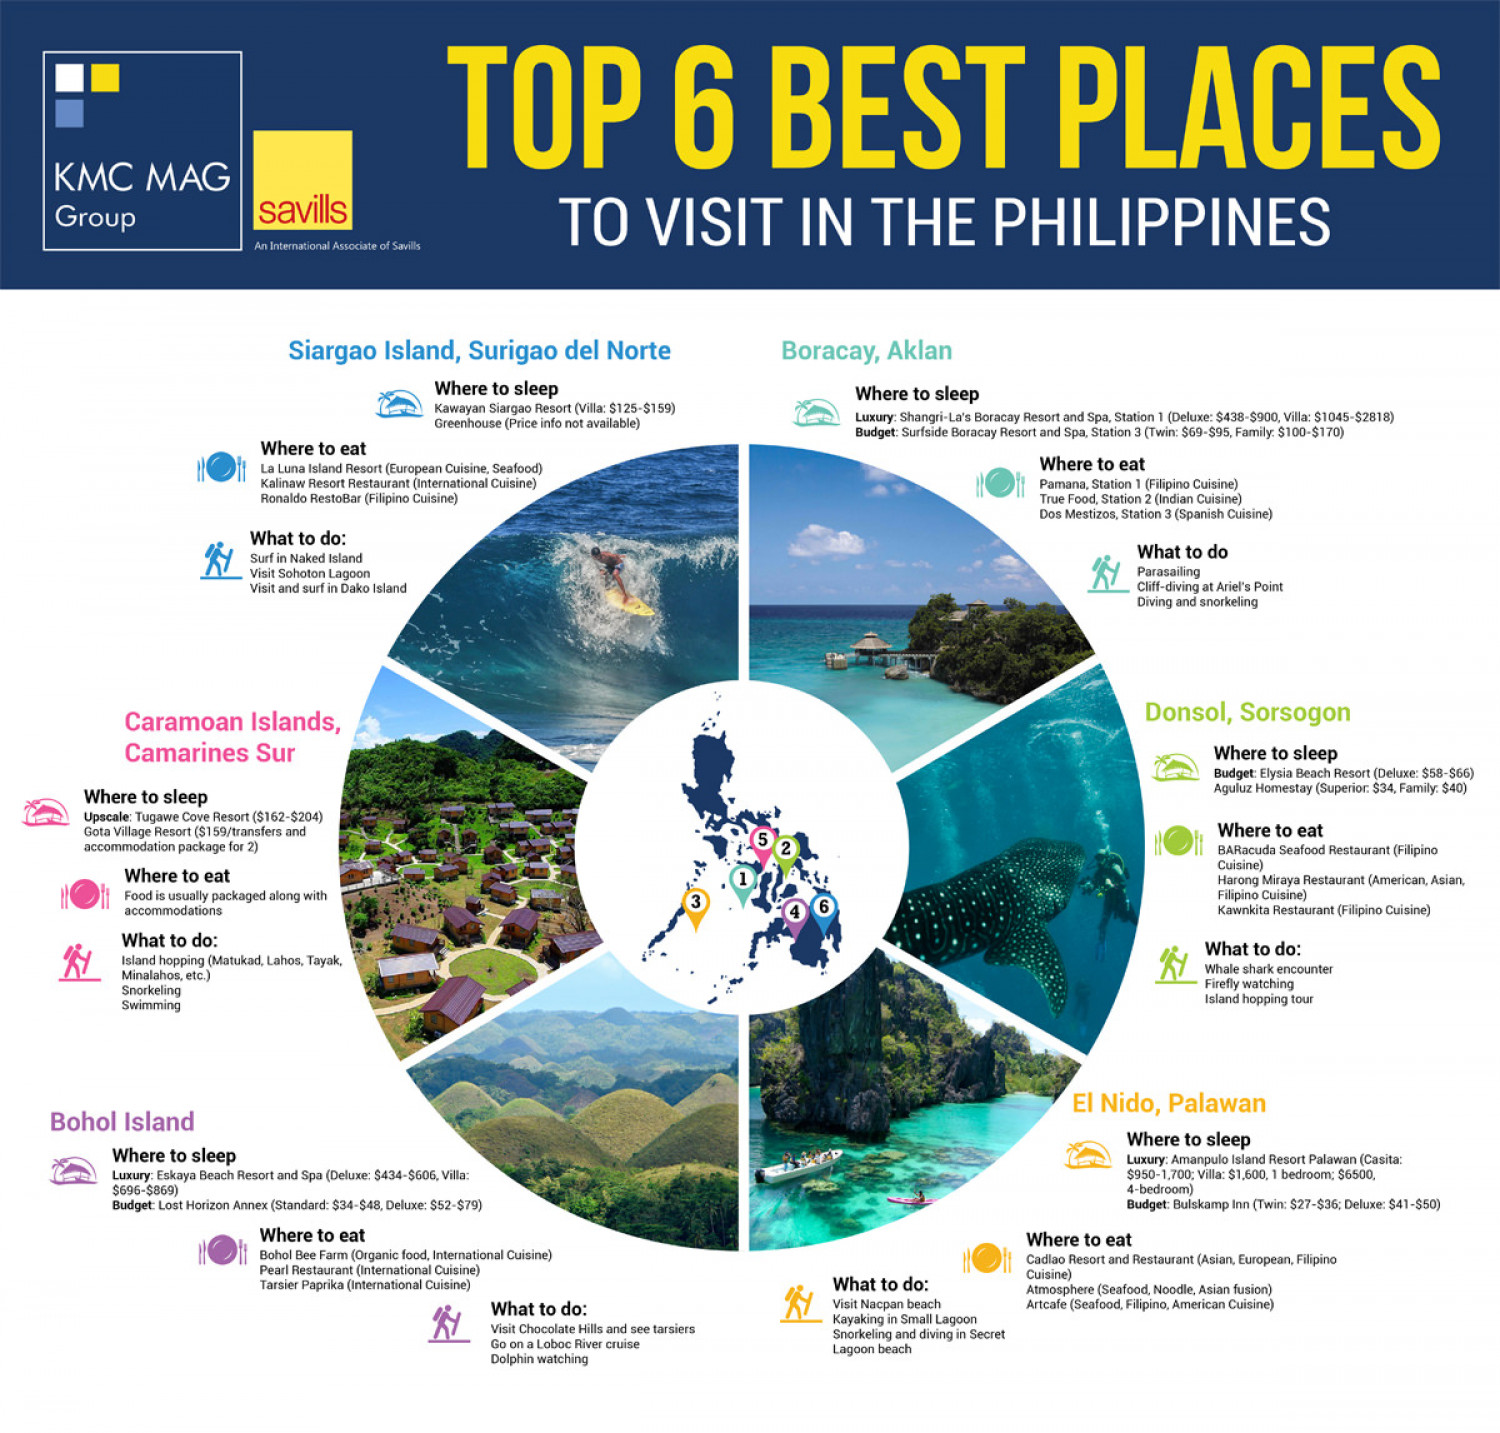 Top 6 Best Places to Visit in the Philippines Infographic